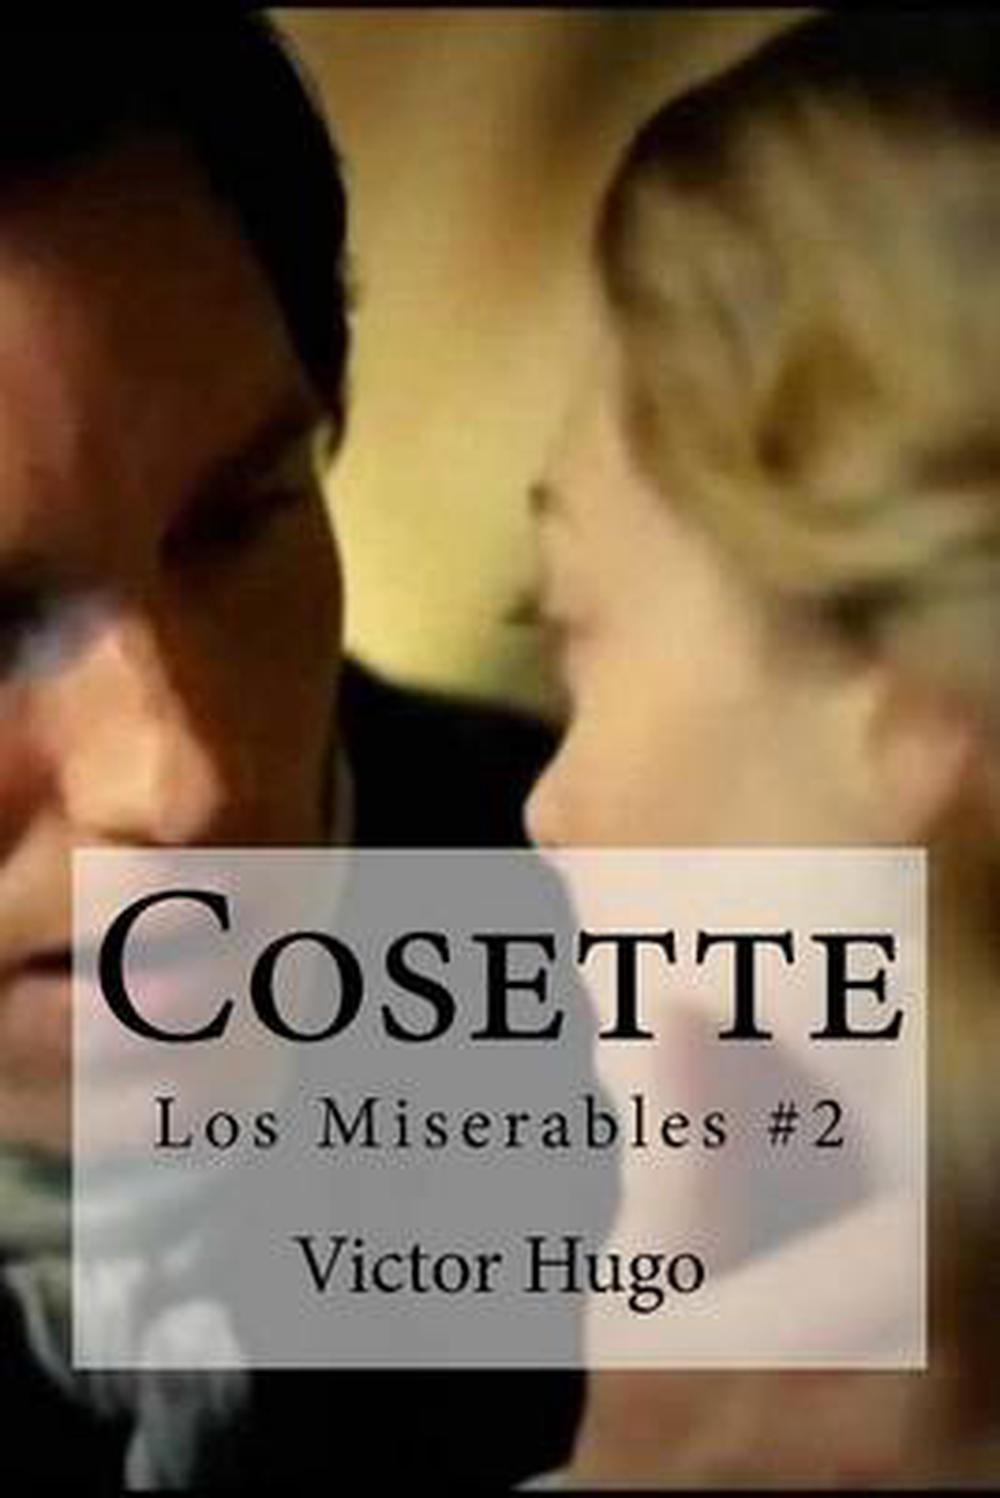 Mis Hogos Details About Cosette Los Miserables 2 By Victor Hugo Spanish Paperback Book Free Shipping